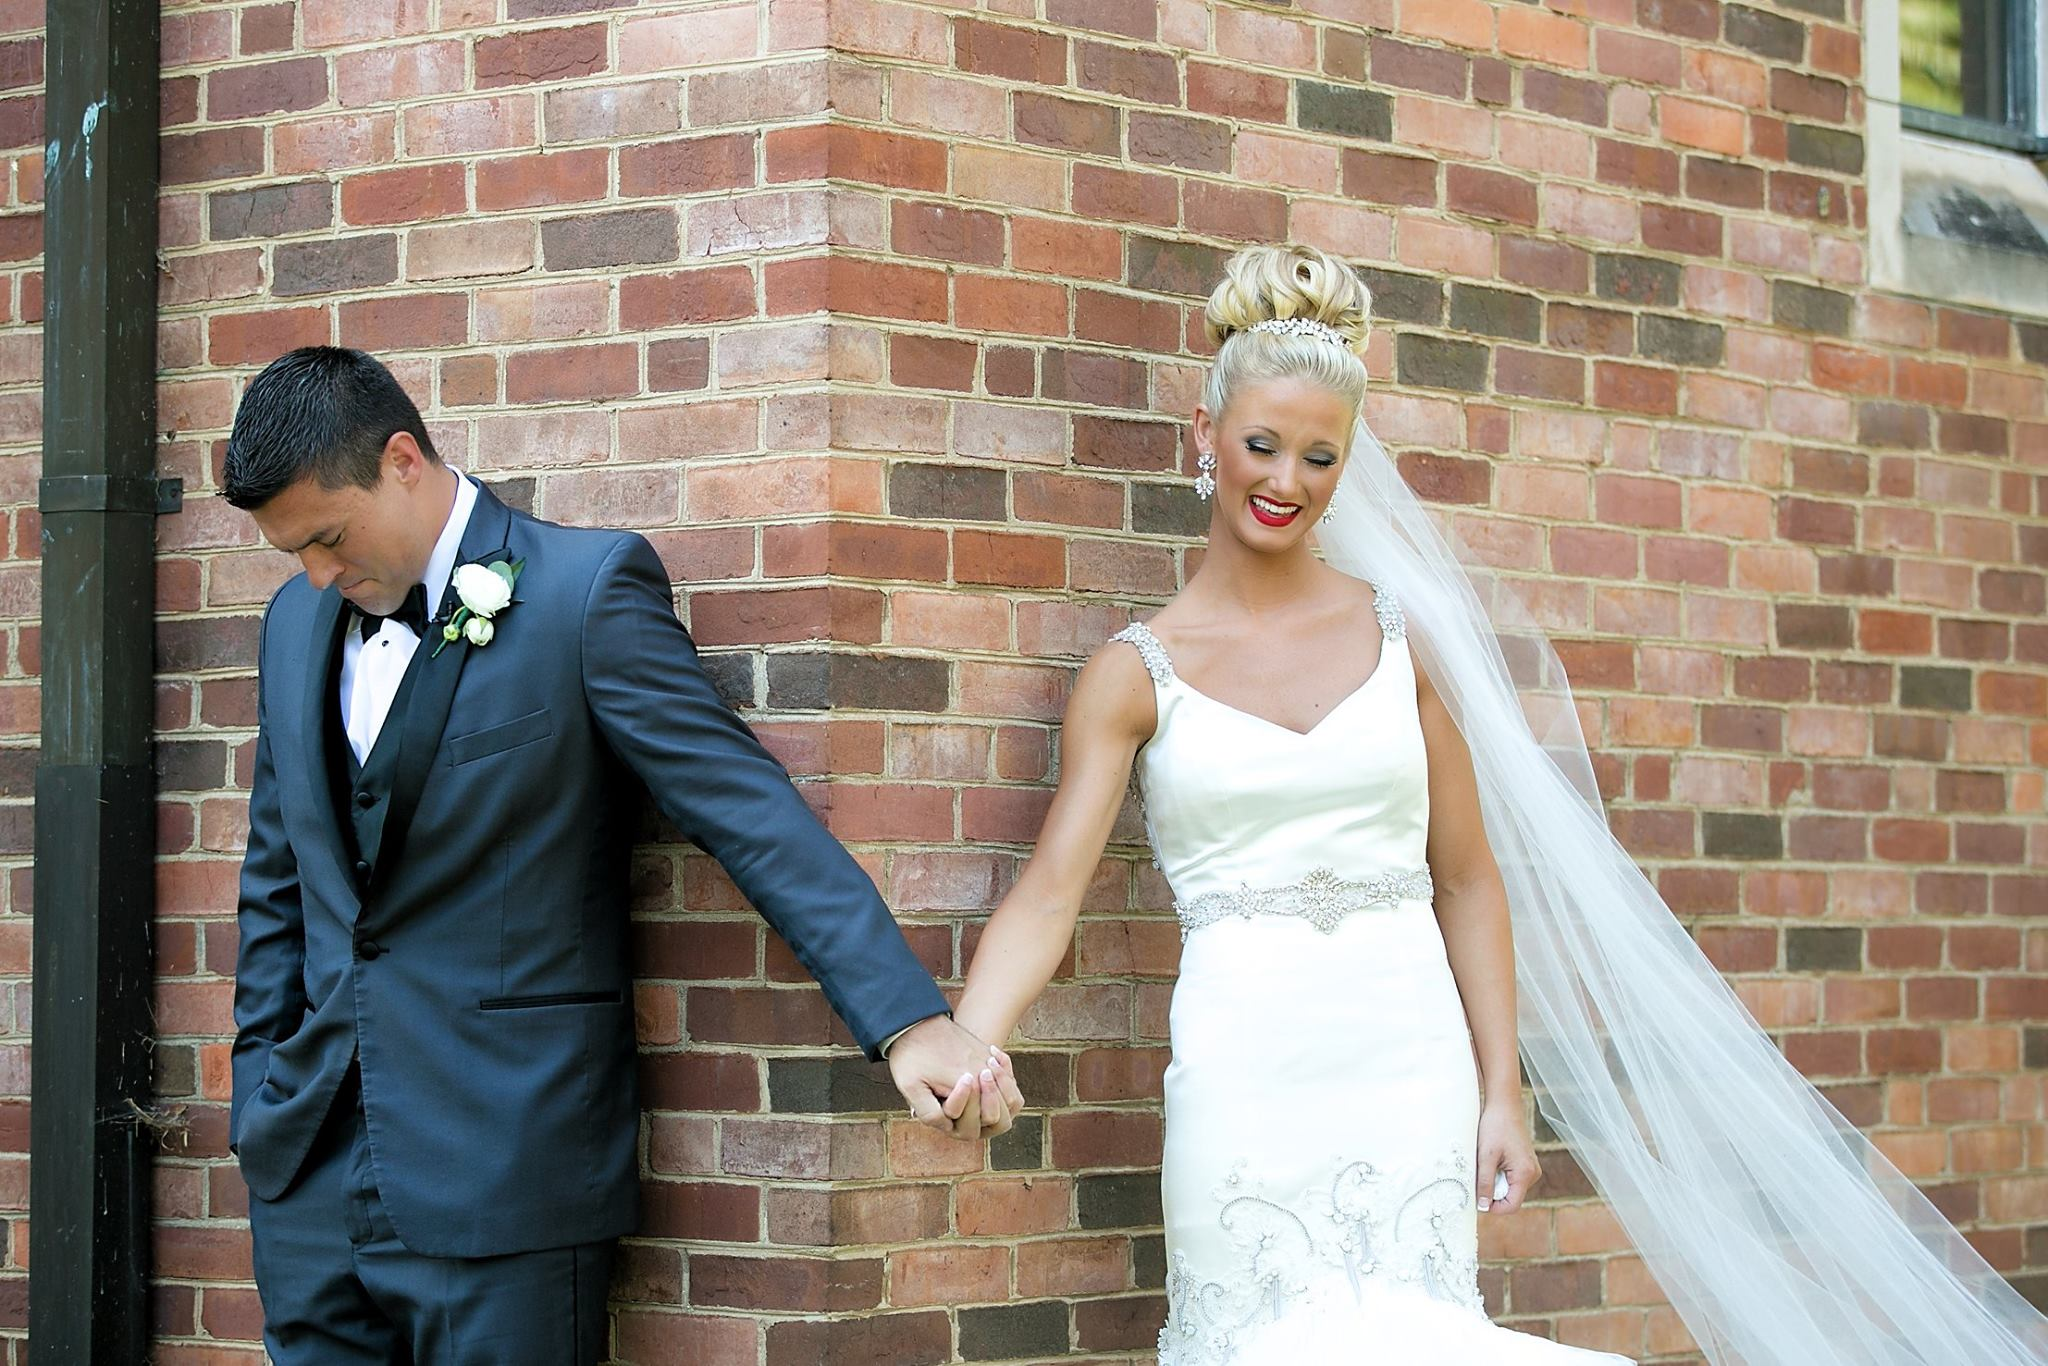 Wedding Wednesday: The First Look(s) | love 'n' labels www.lovenlabels.com